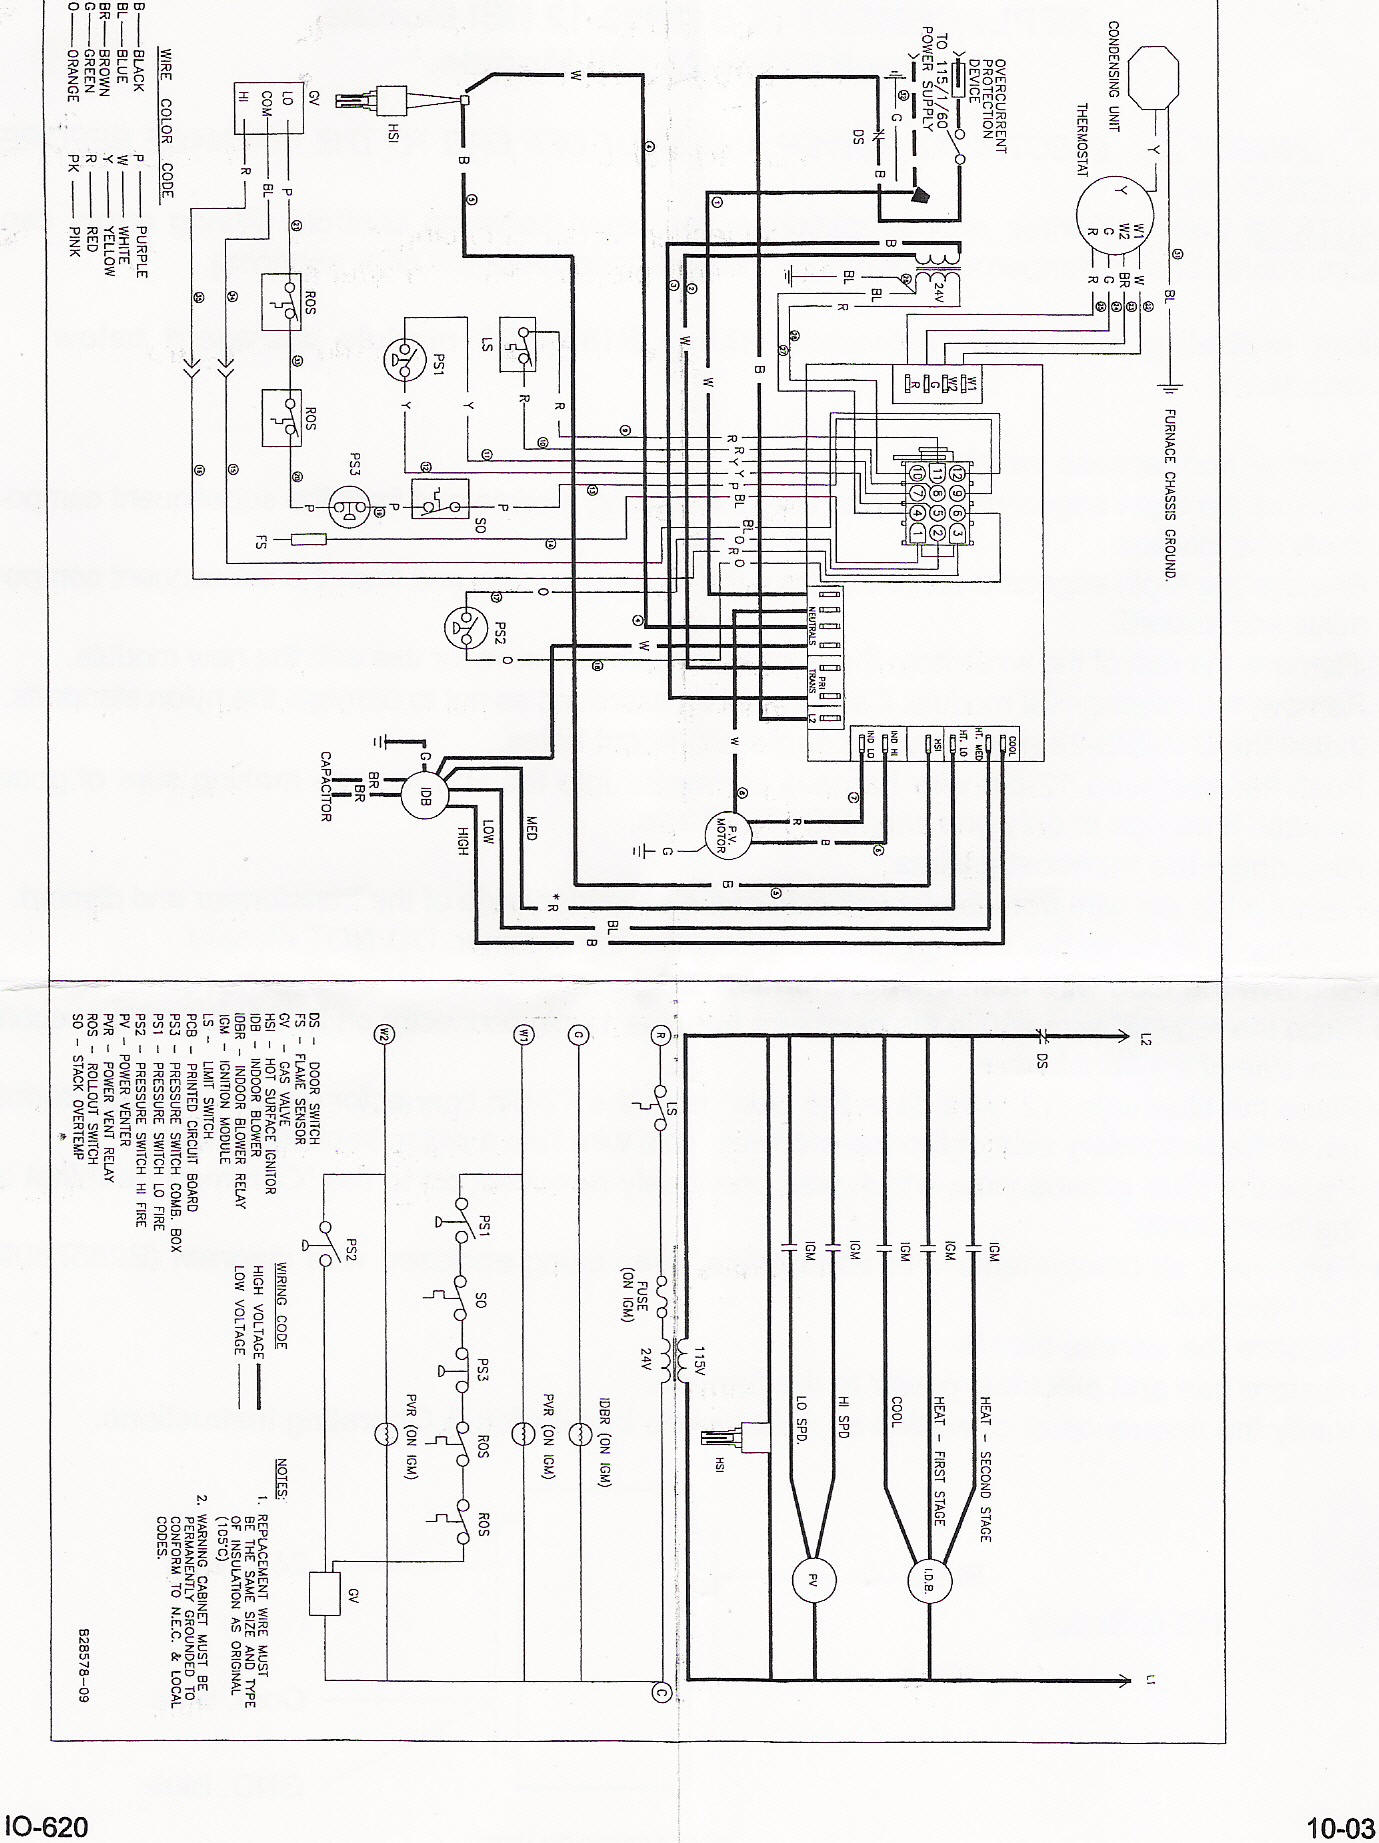 Goodman Fan Relay Wiring Diagram 32 Images Hvac Blower Motor Control Board B18099 23 Instructions Goodma2 Instr At Cita